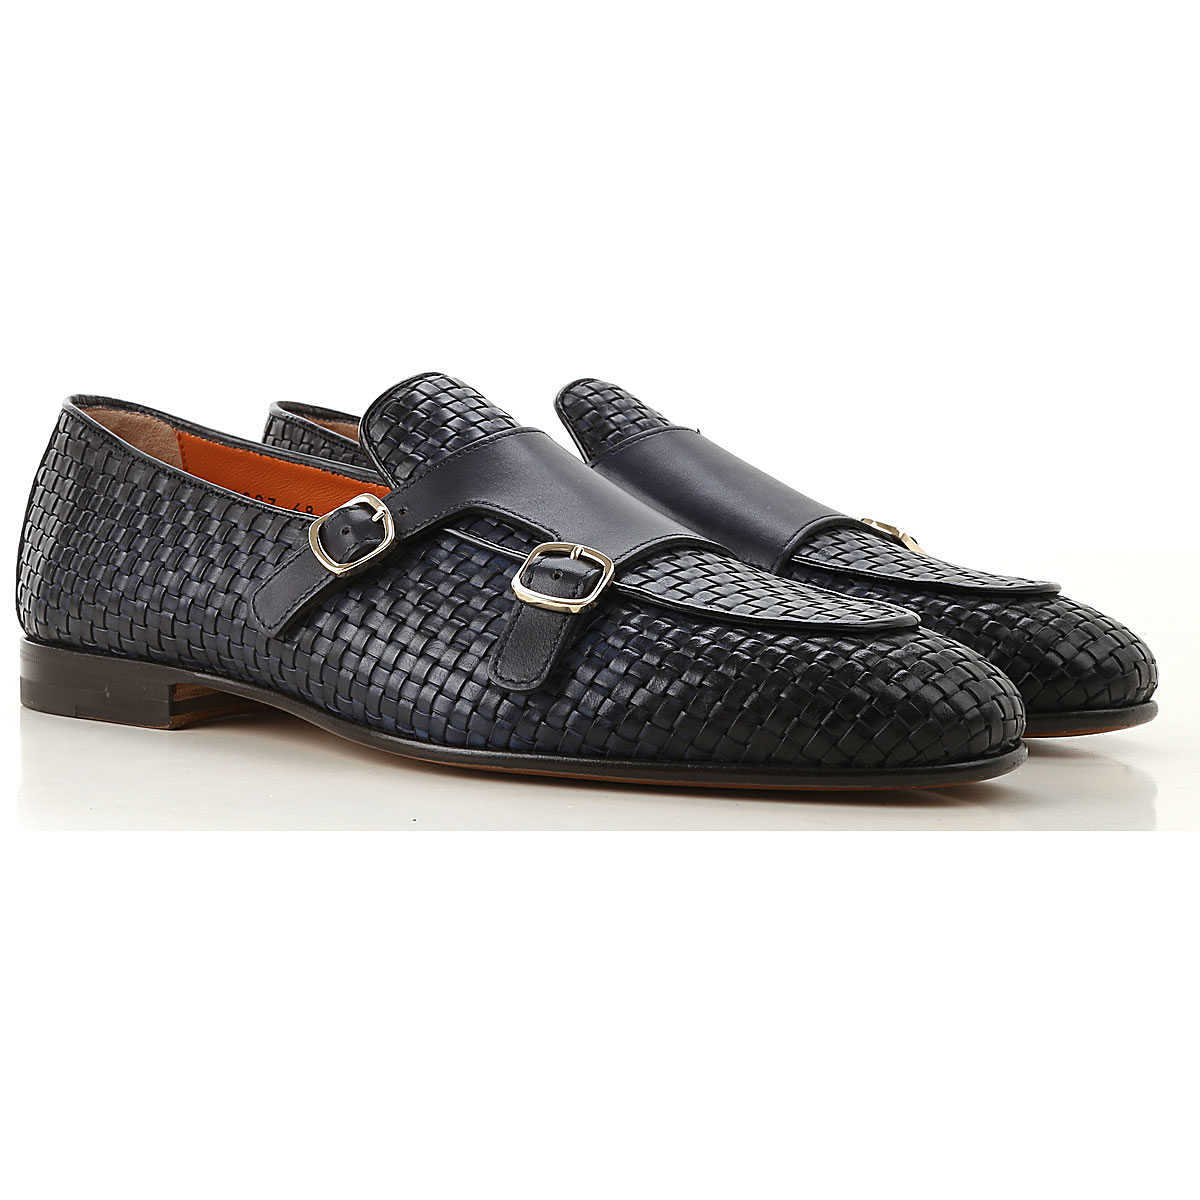 Santoni Loafers for Men Midnight Canada - GOOFASH - Mens LOAFERS